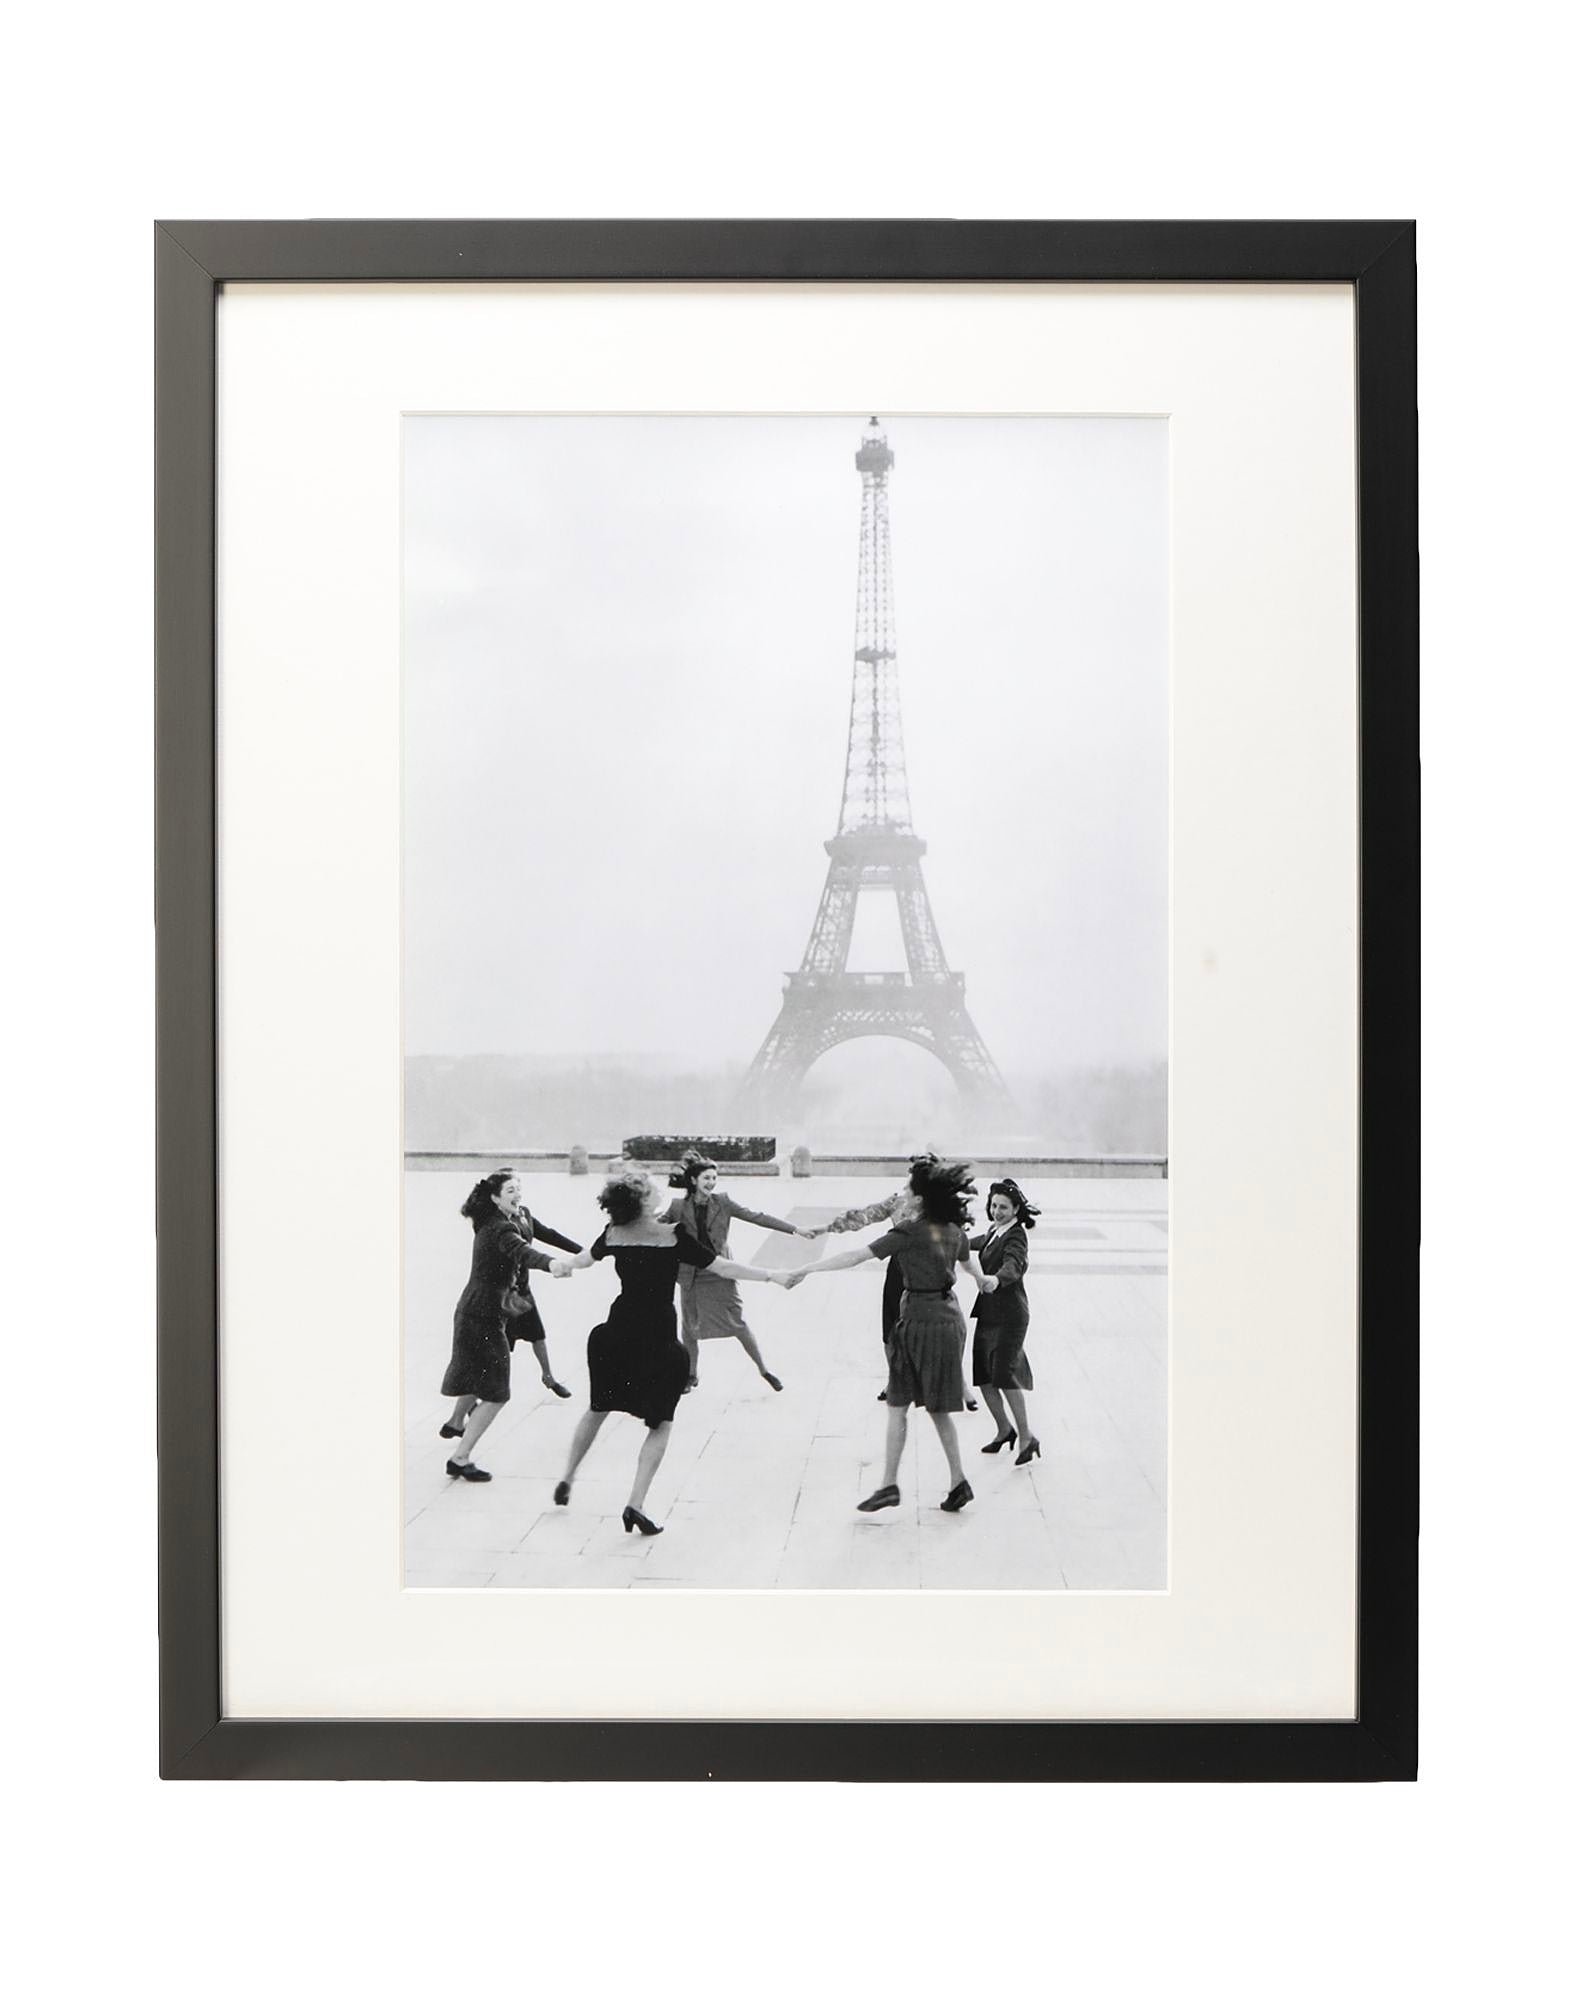 Eiffel Tower Photography -  Dancing in front of the Eiffel Tower Photography